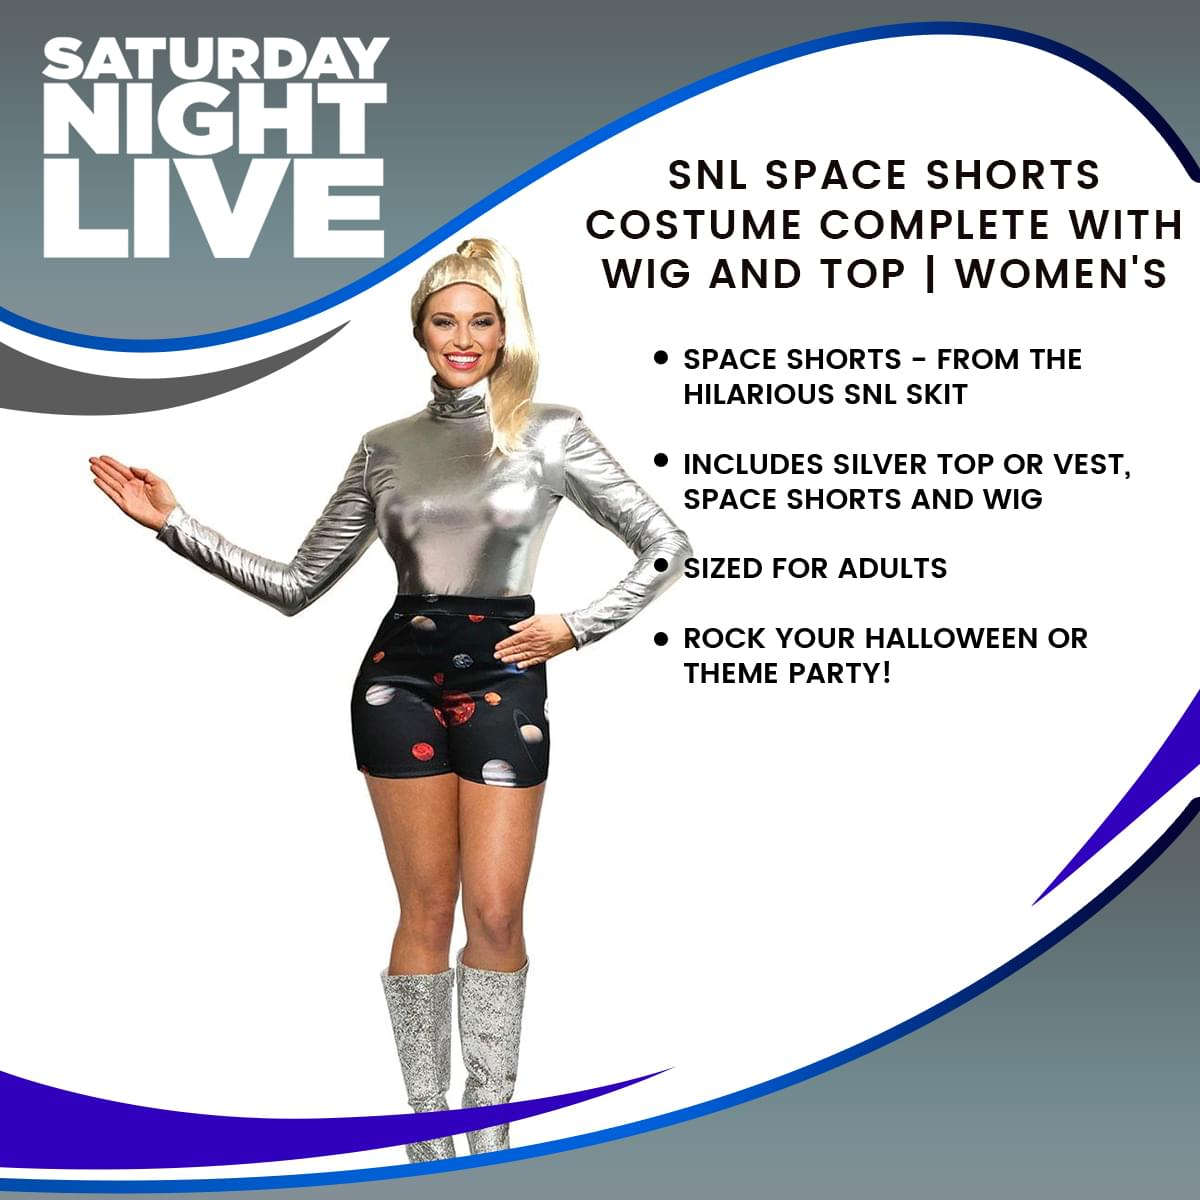 SNL Space Shorts Costume Complete with Wig and Top | Women's